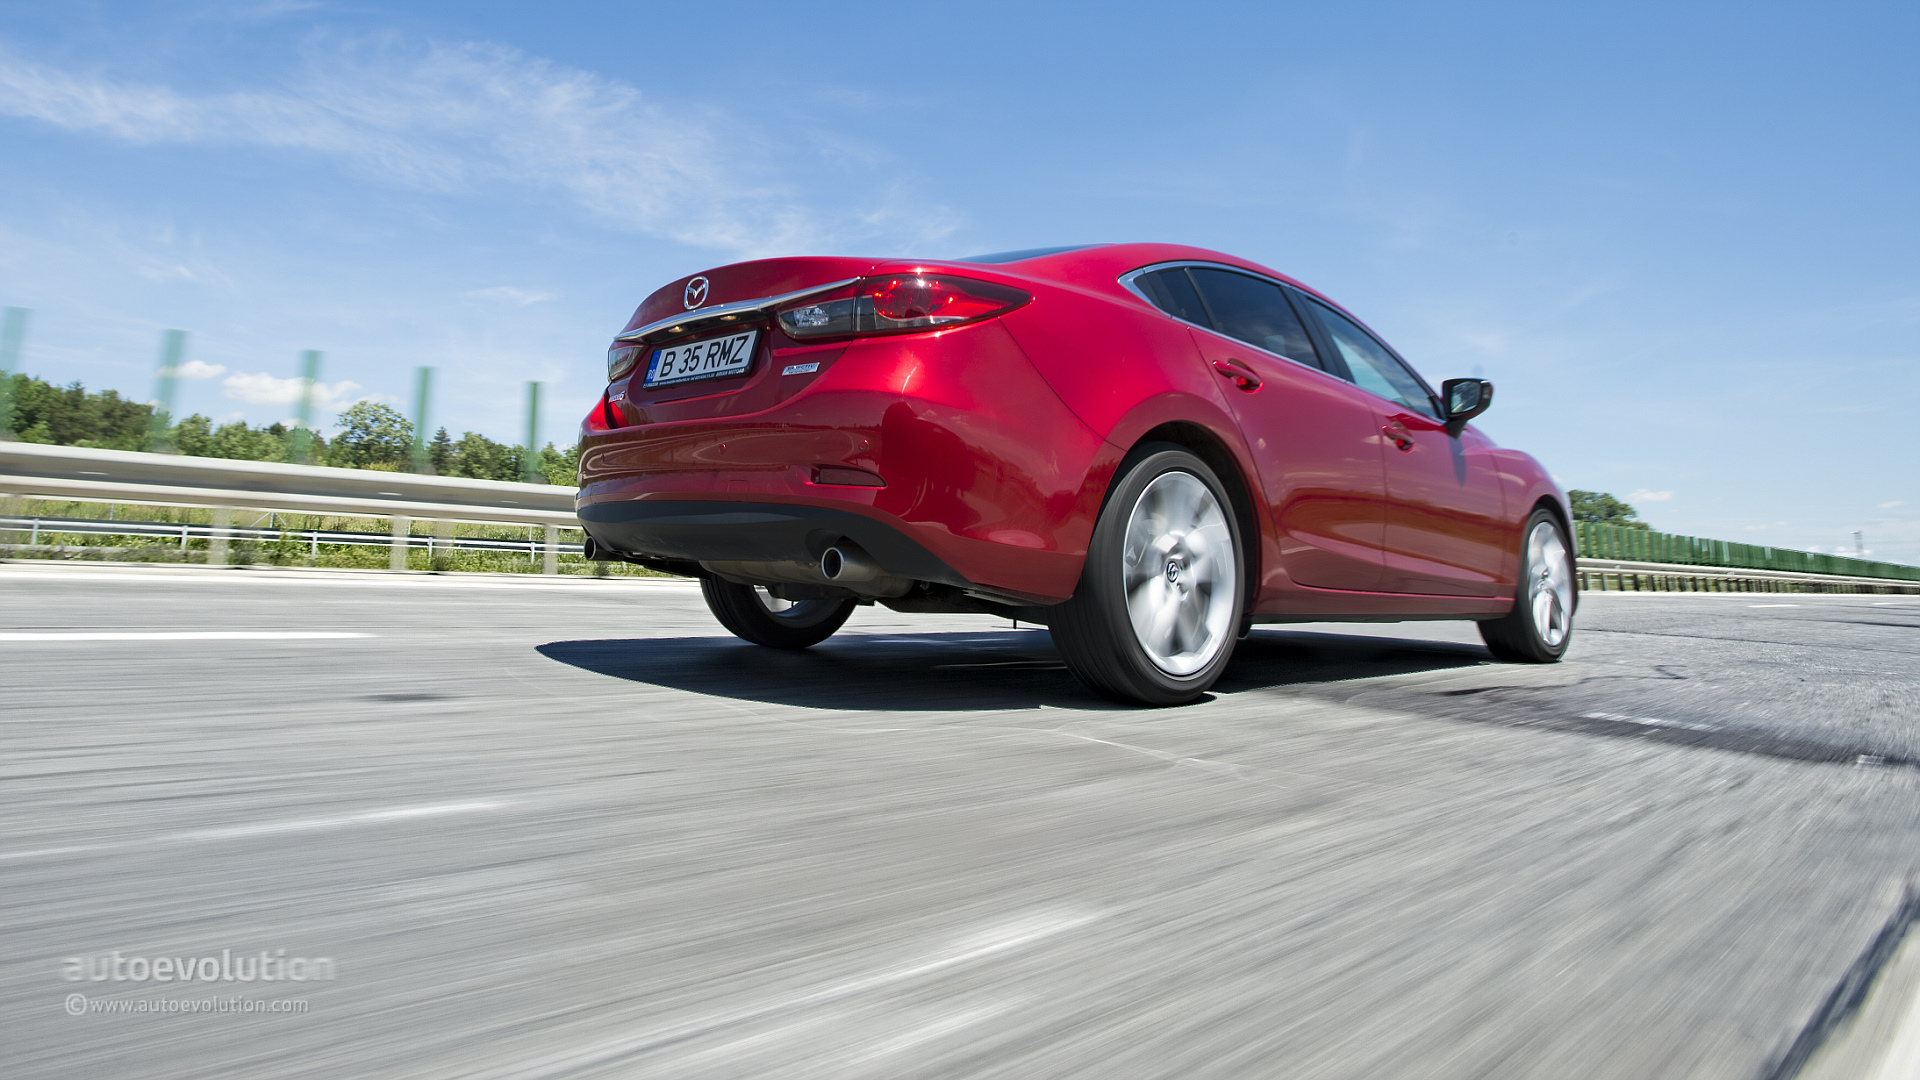 2014 mazda 6 review prices photos new car test. Black Bedroom Furniture Sets. Home Design Ideas